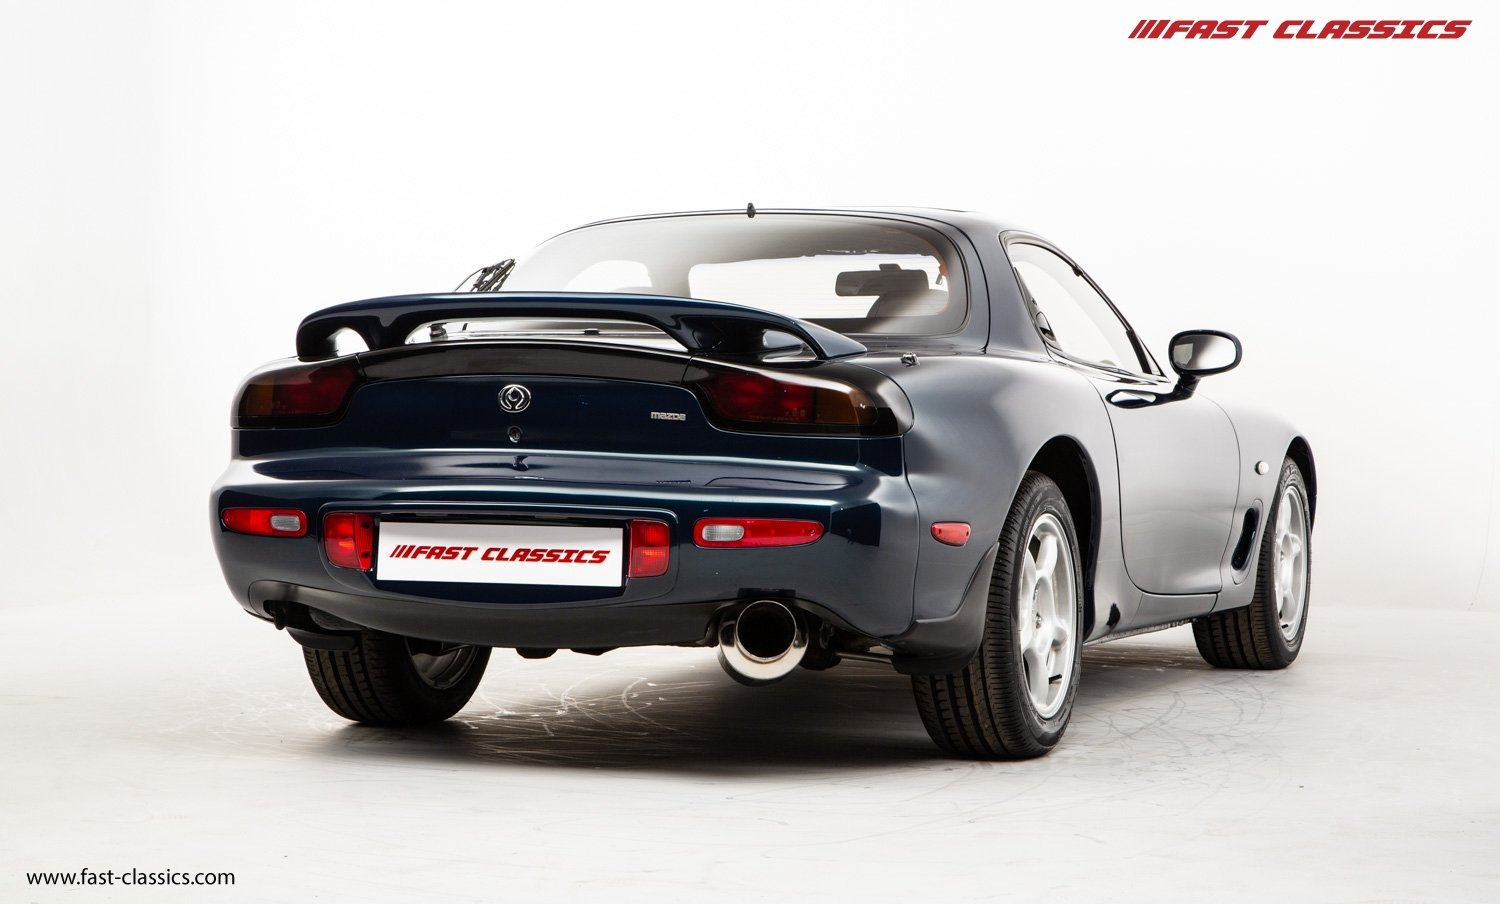 1993 MAZDA RX-7 FD // FAMILY OWNED // 26K MILES // 1 OF 210 UK DE For Sale (picture 8 of 23)